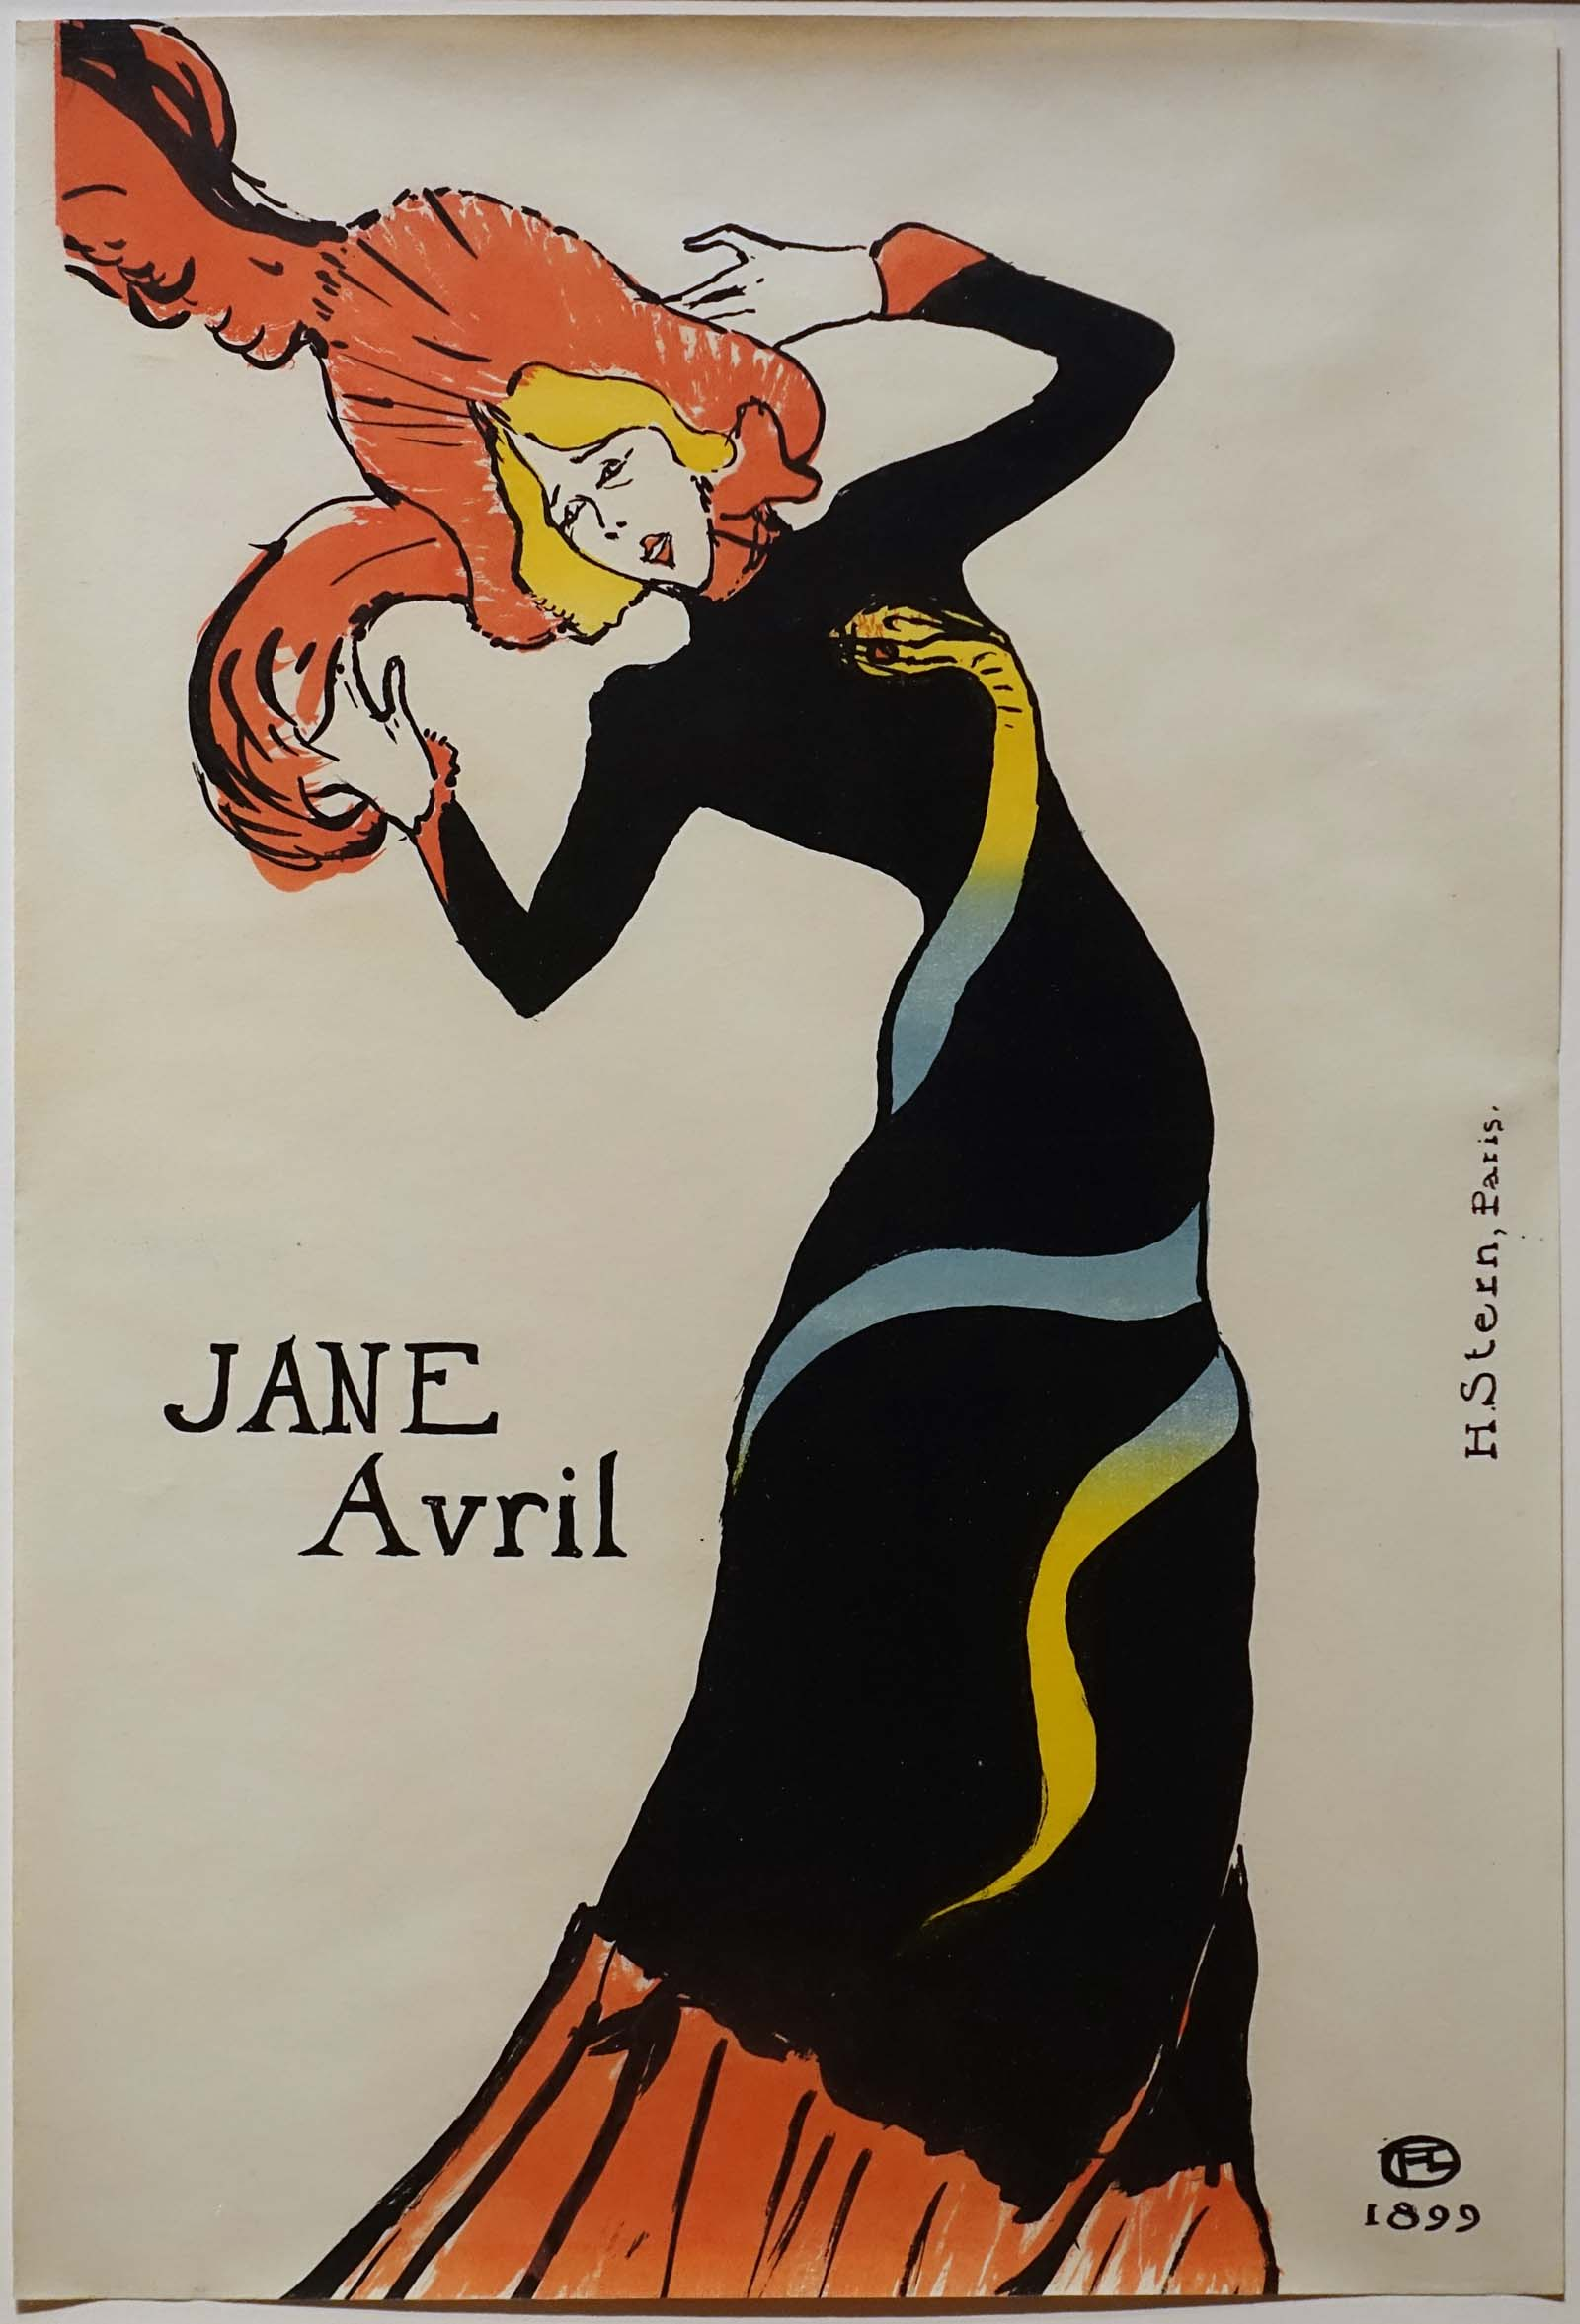 a drawing of a woman with red hair and a dress with snake motif dancing